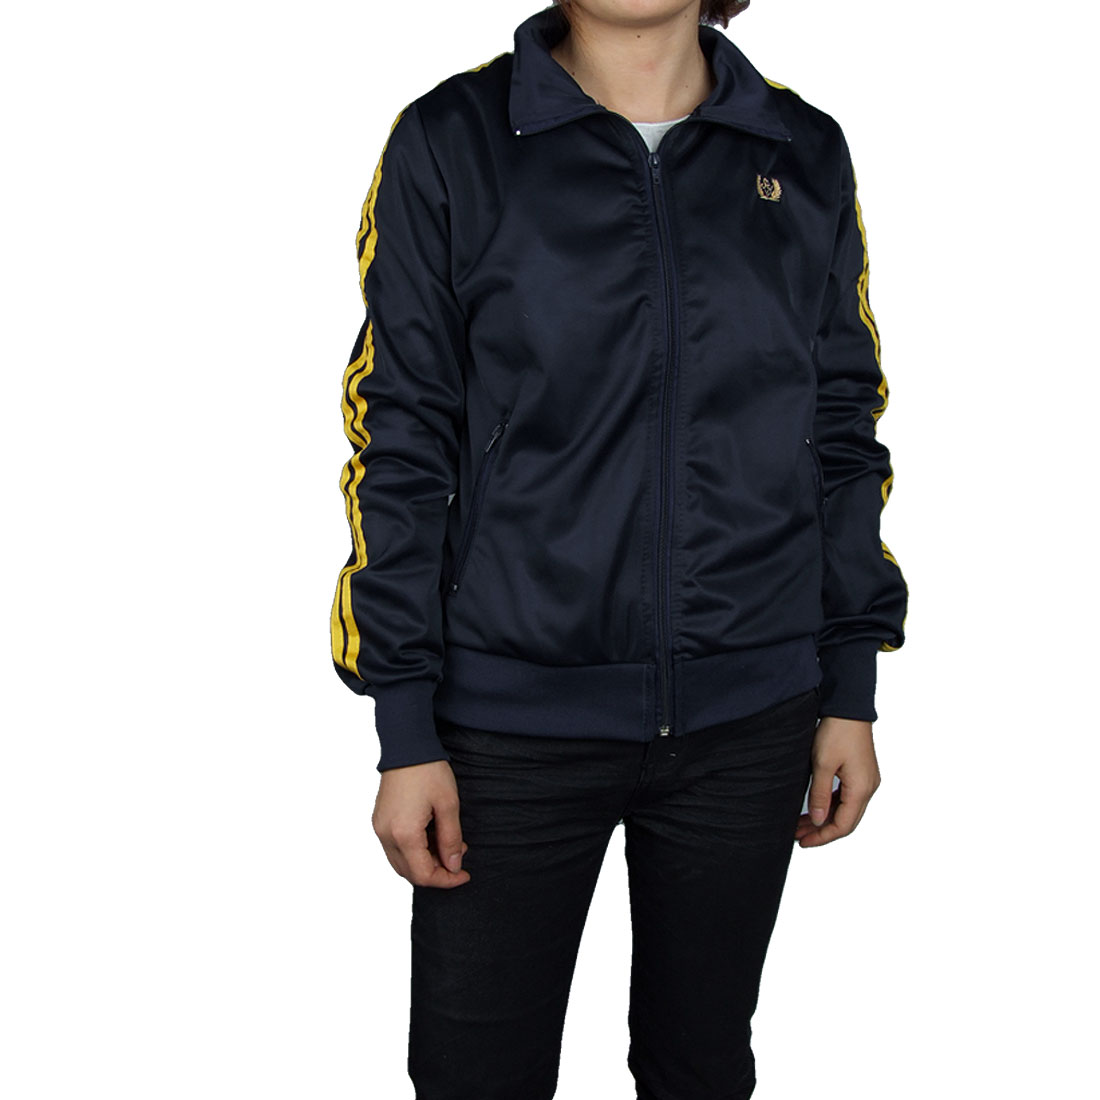 9181 Navy Blue Zip Up Sports Track Jacket Ladies Ribbed Cuff Top